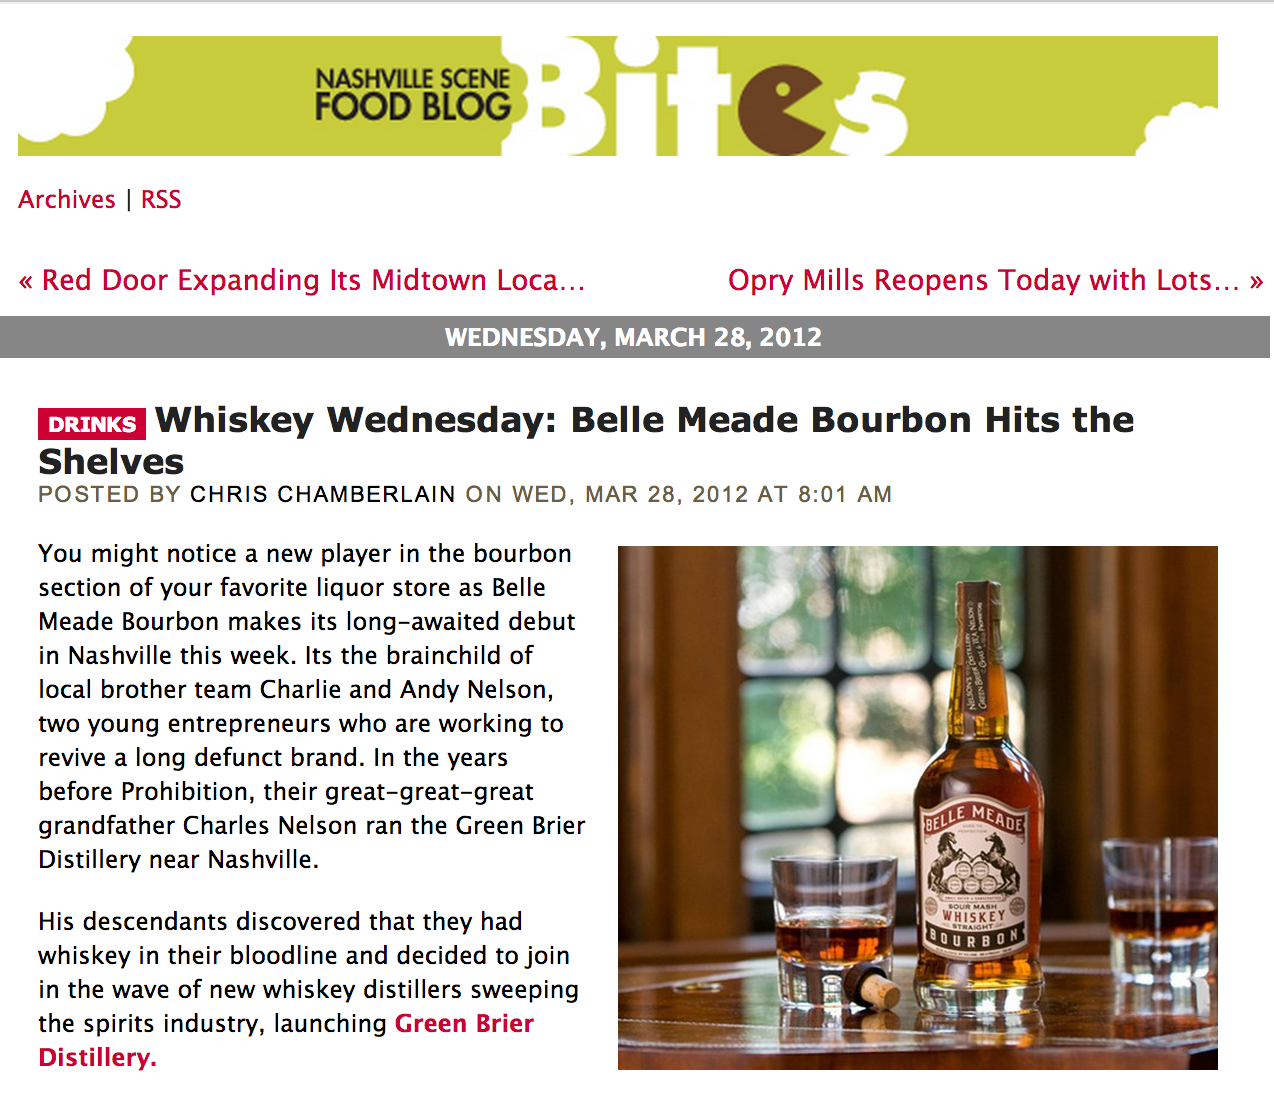 Belle Mead Bourbon Featured in Bites Blog